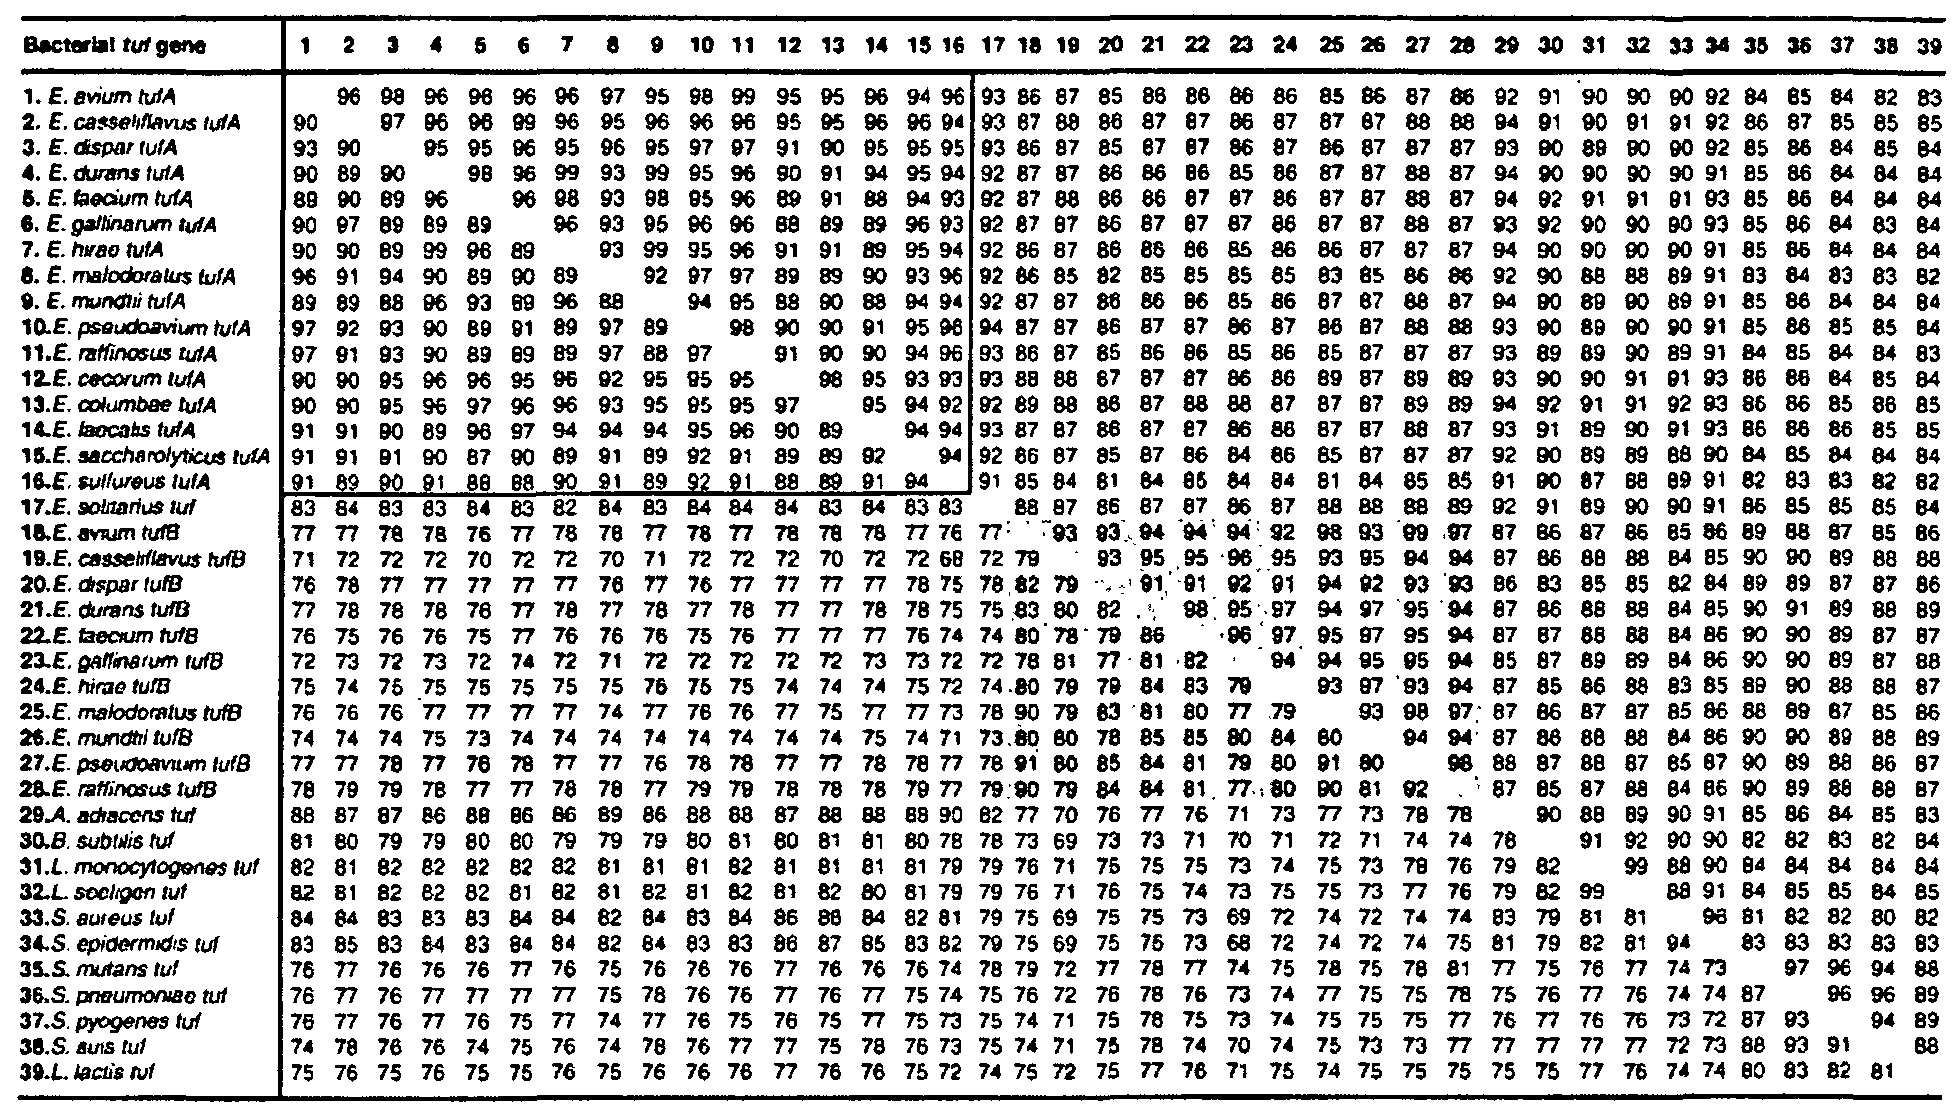 WO2001023604A2 - Highly conserved genes and their use to